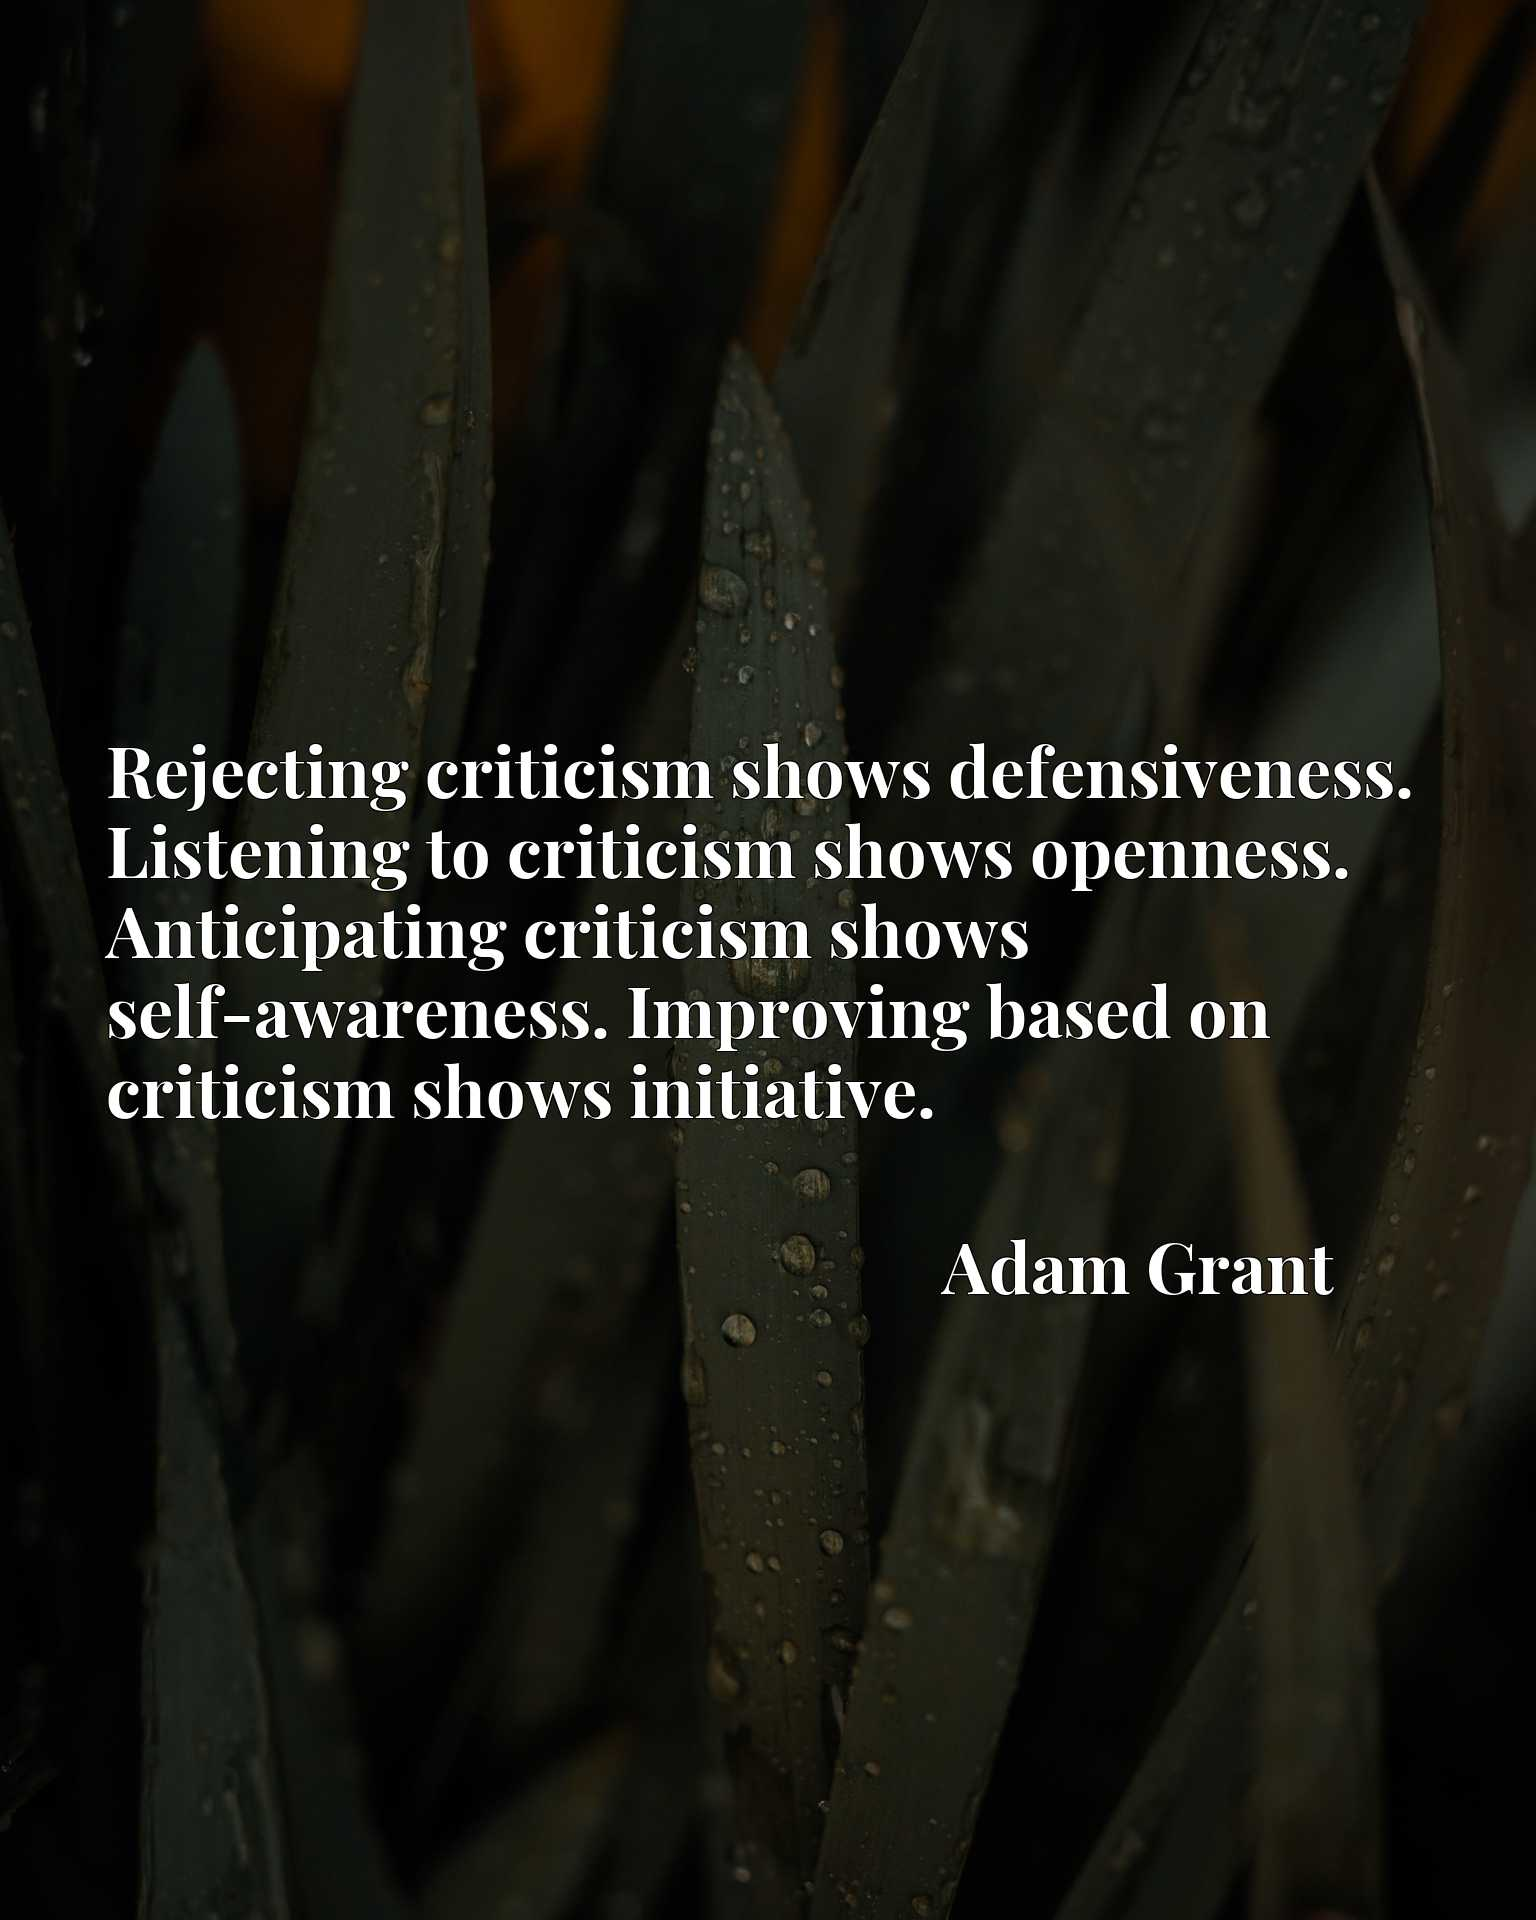 Rejecting criticism shows defensiveness. Listening to criticism shows openness. Anticipating criticism shows self-awareness. Improving based on criticism shows initiative.